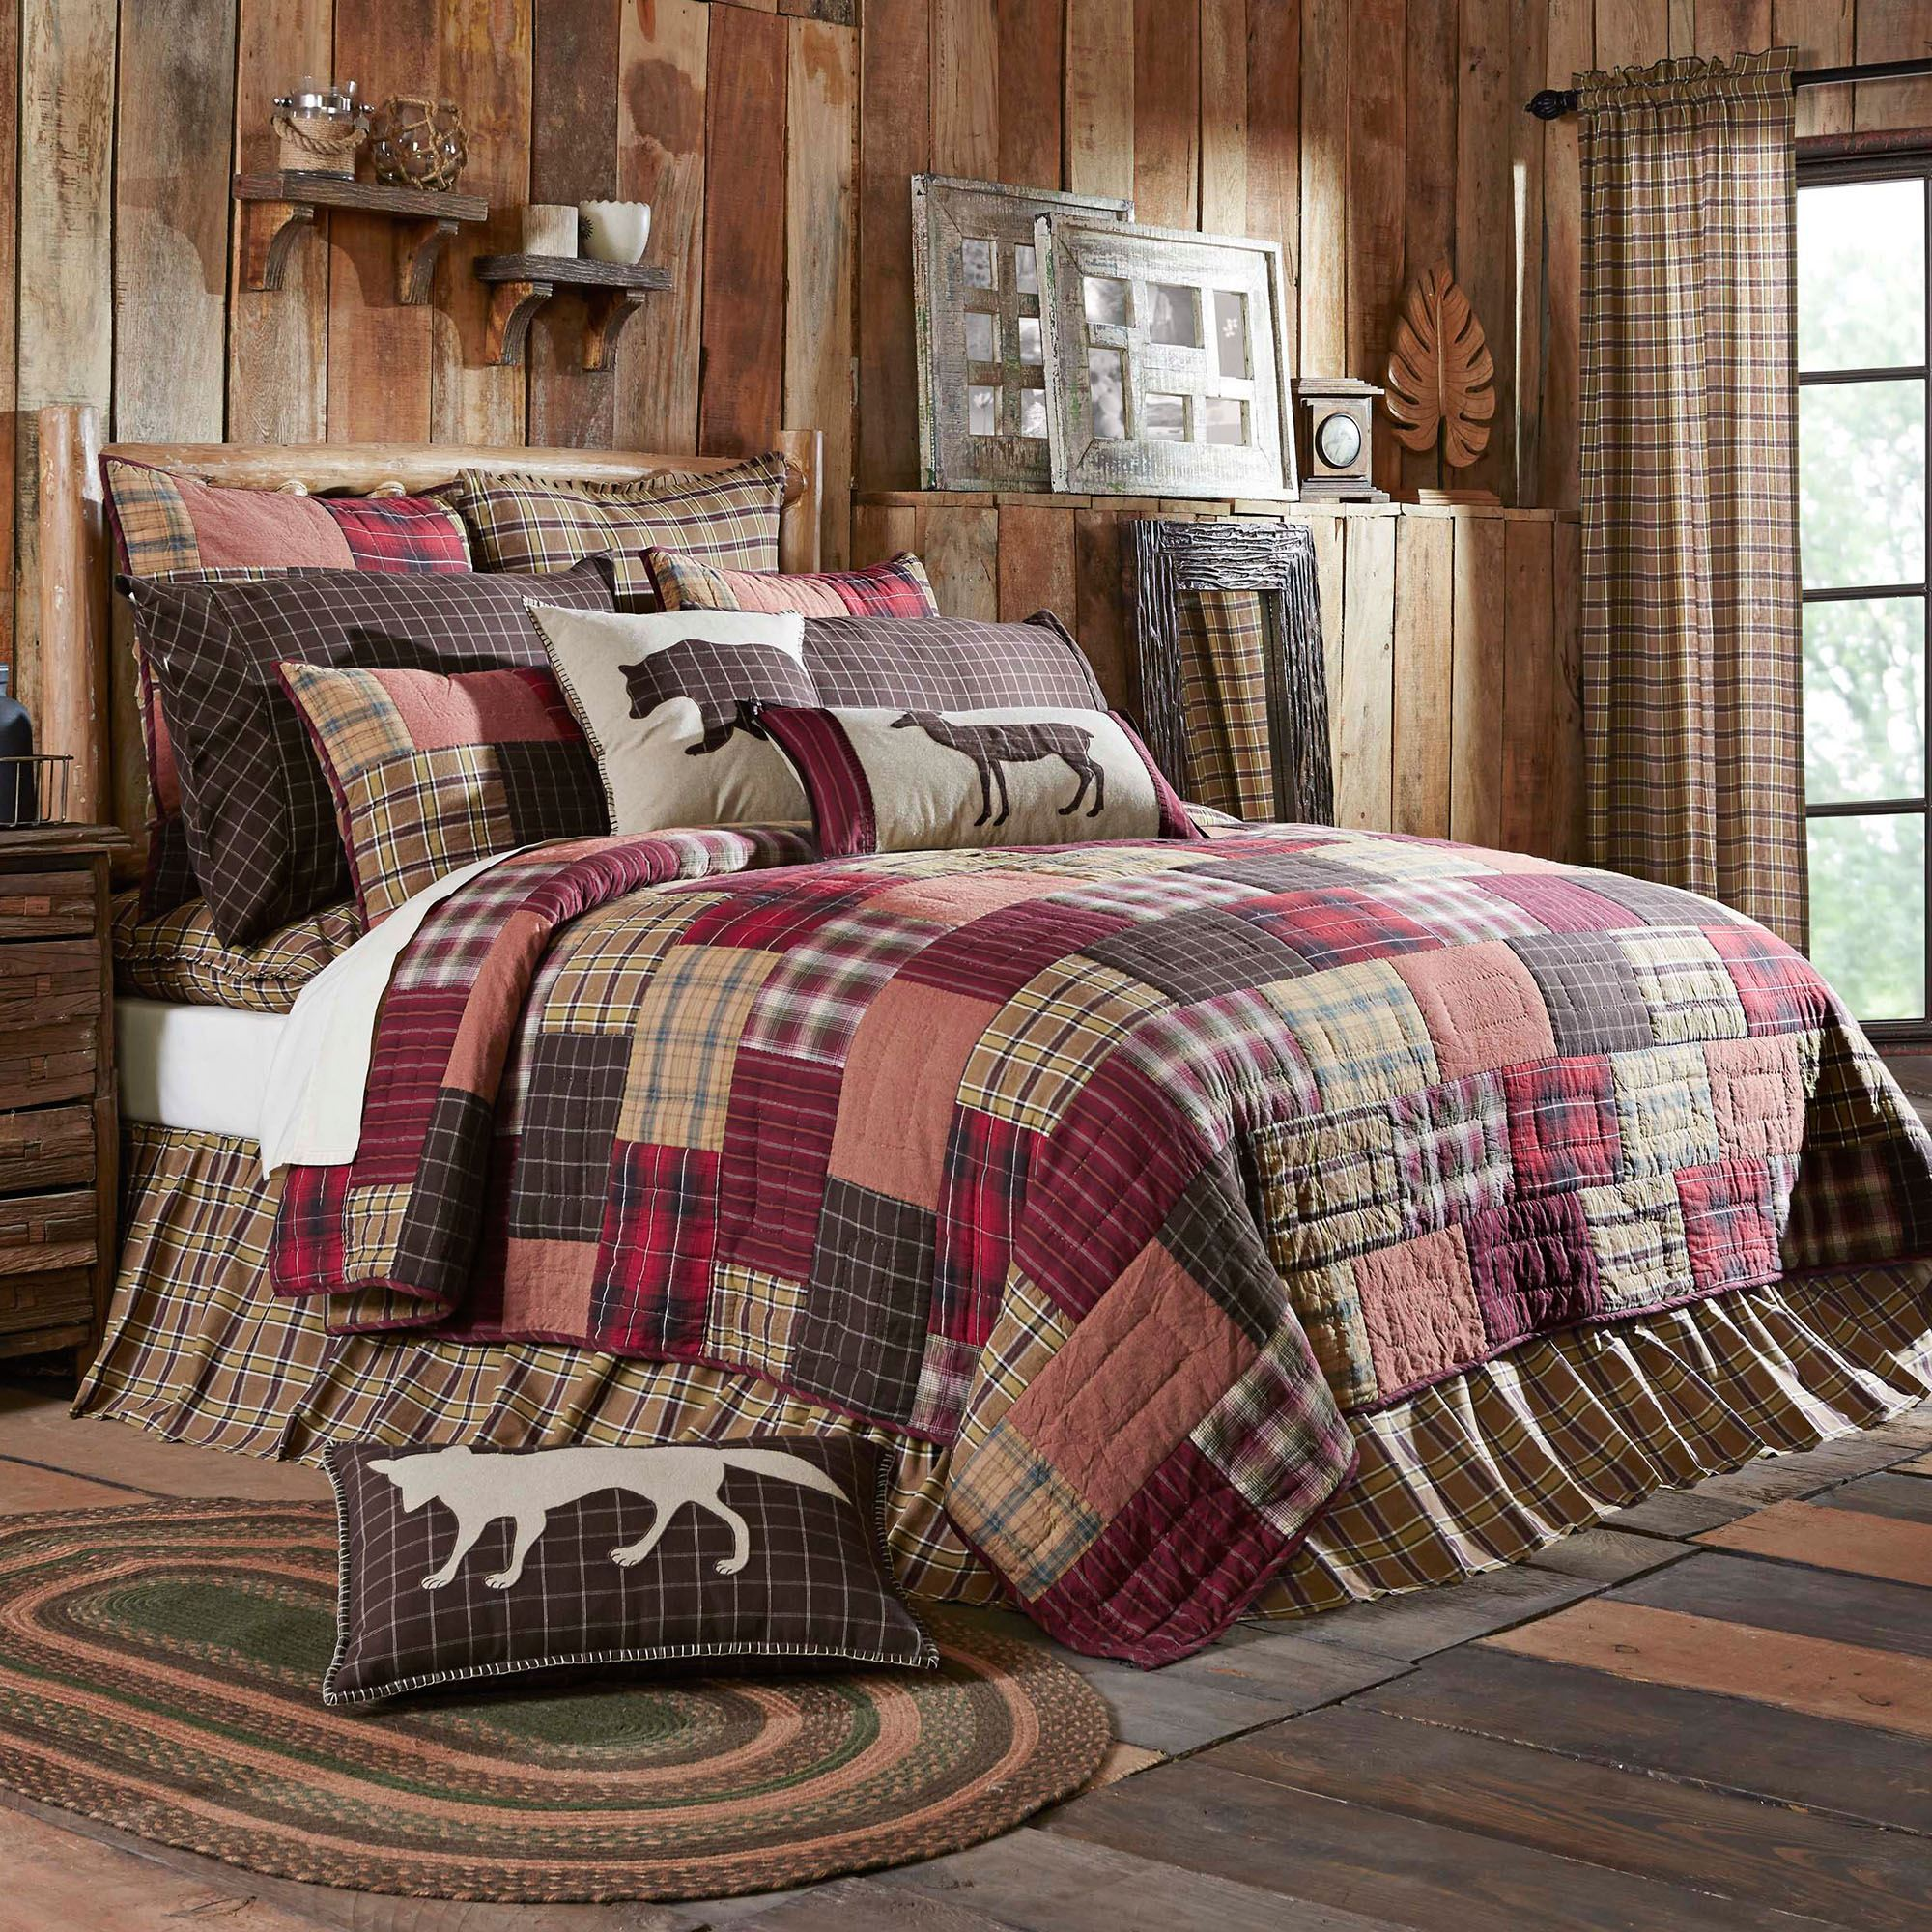 Wyatt Rustic Plaid Patchwork Quilt Bedding